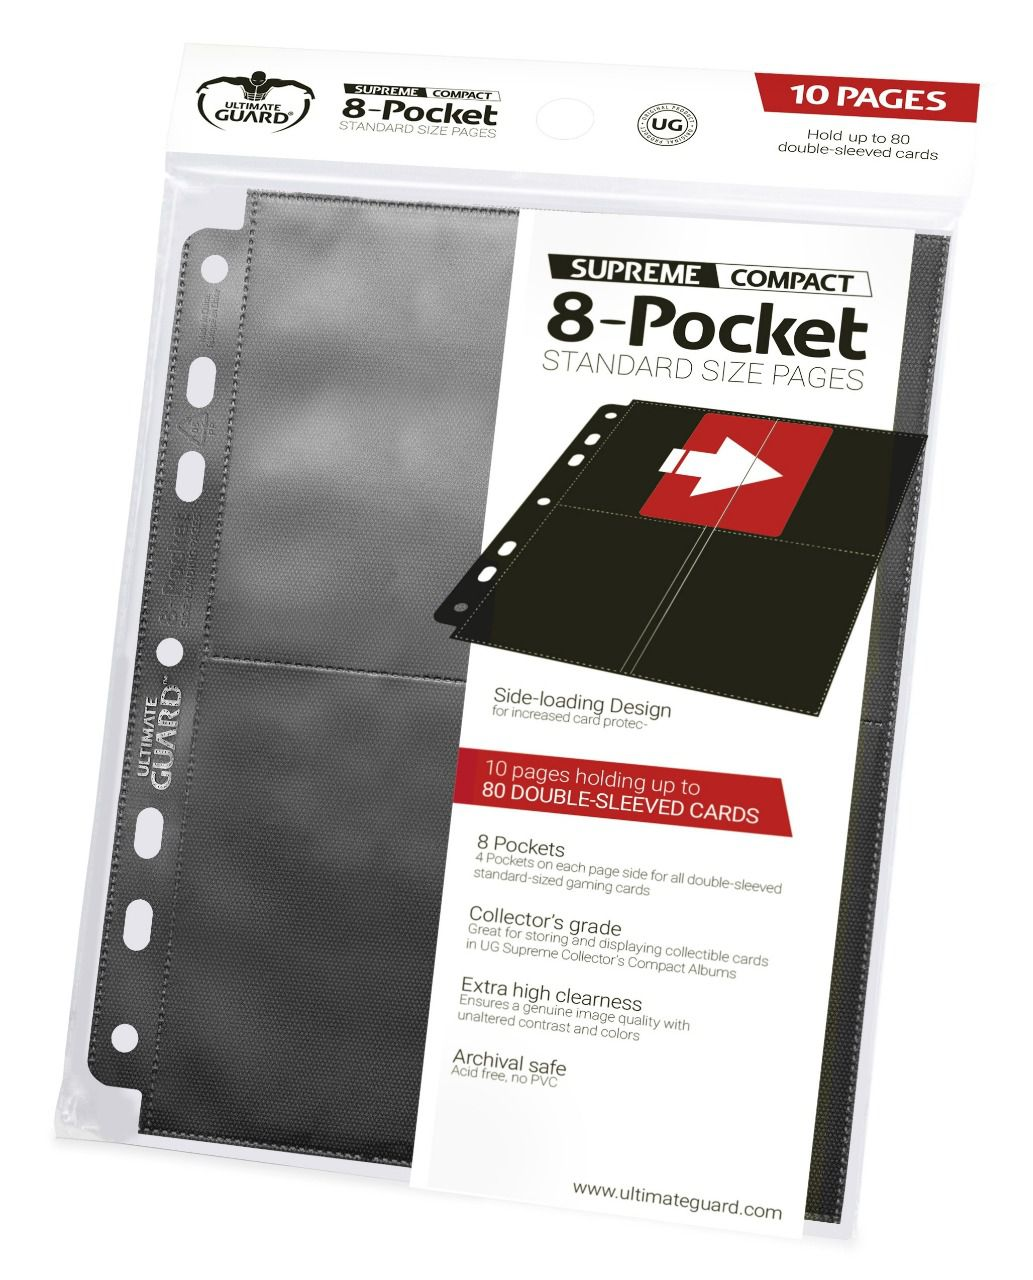 Ultimate Guard Supreme Compact 8-Pocket Standard Size Pages